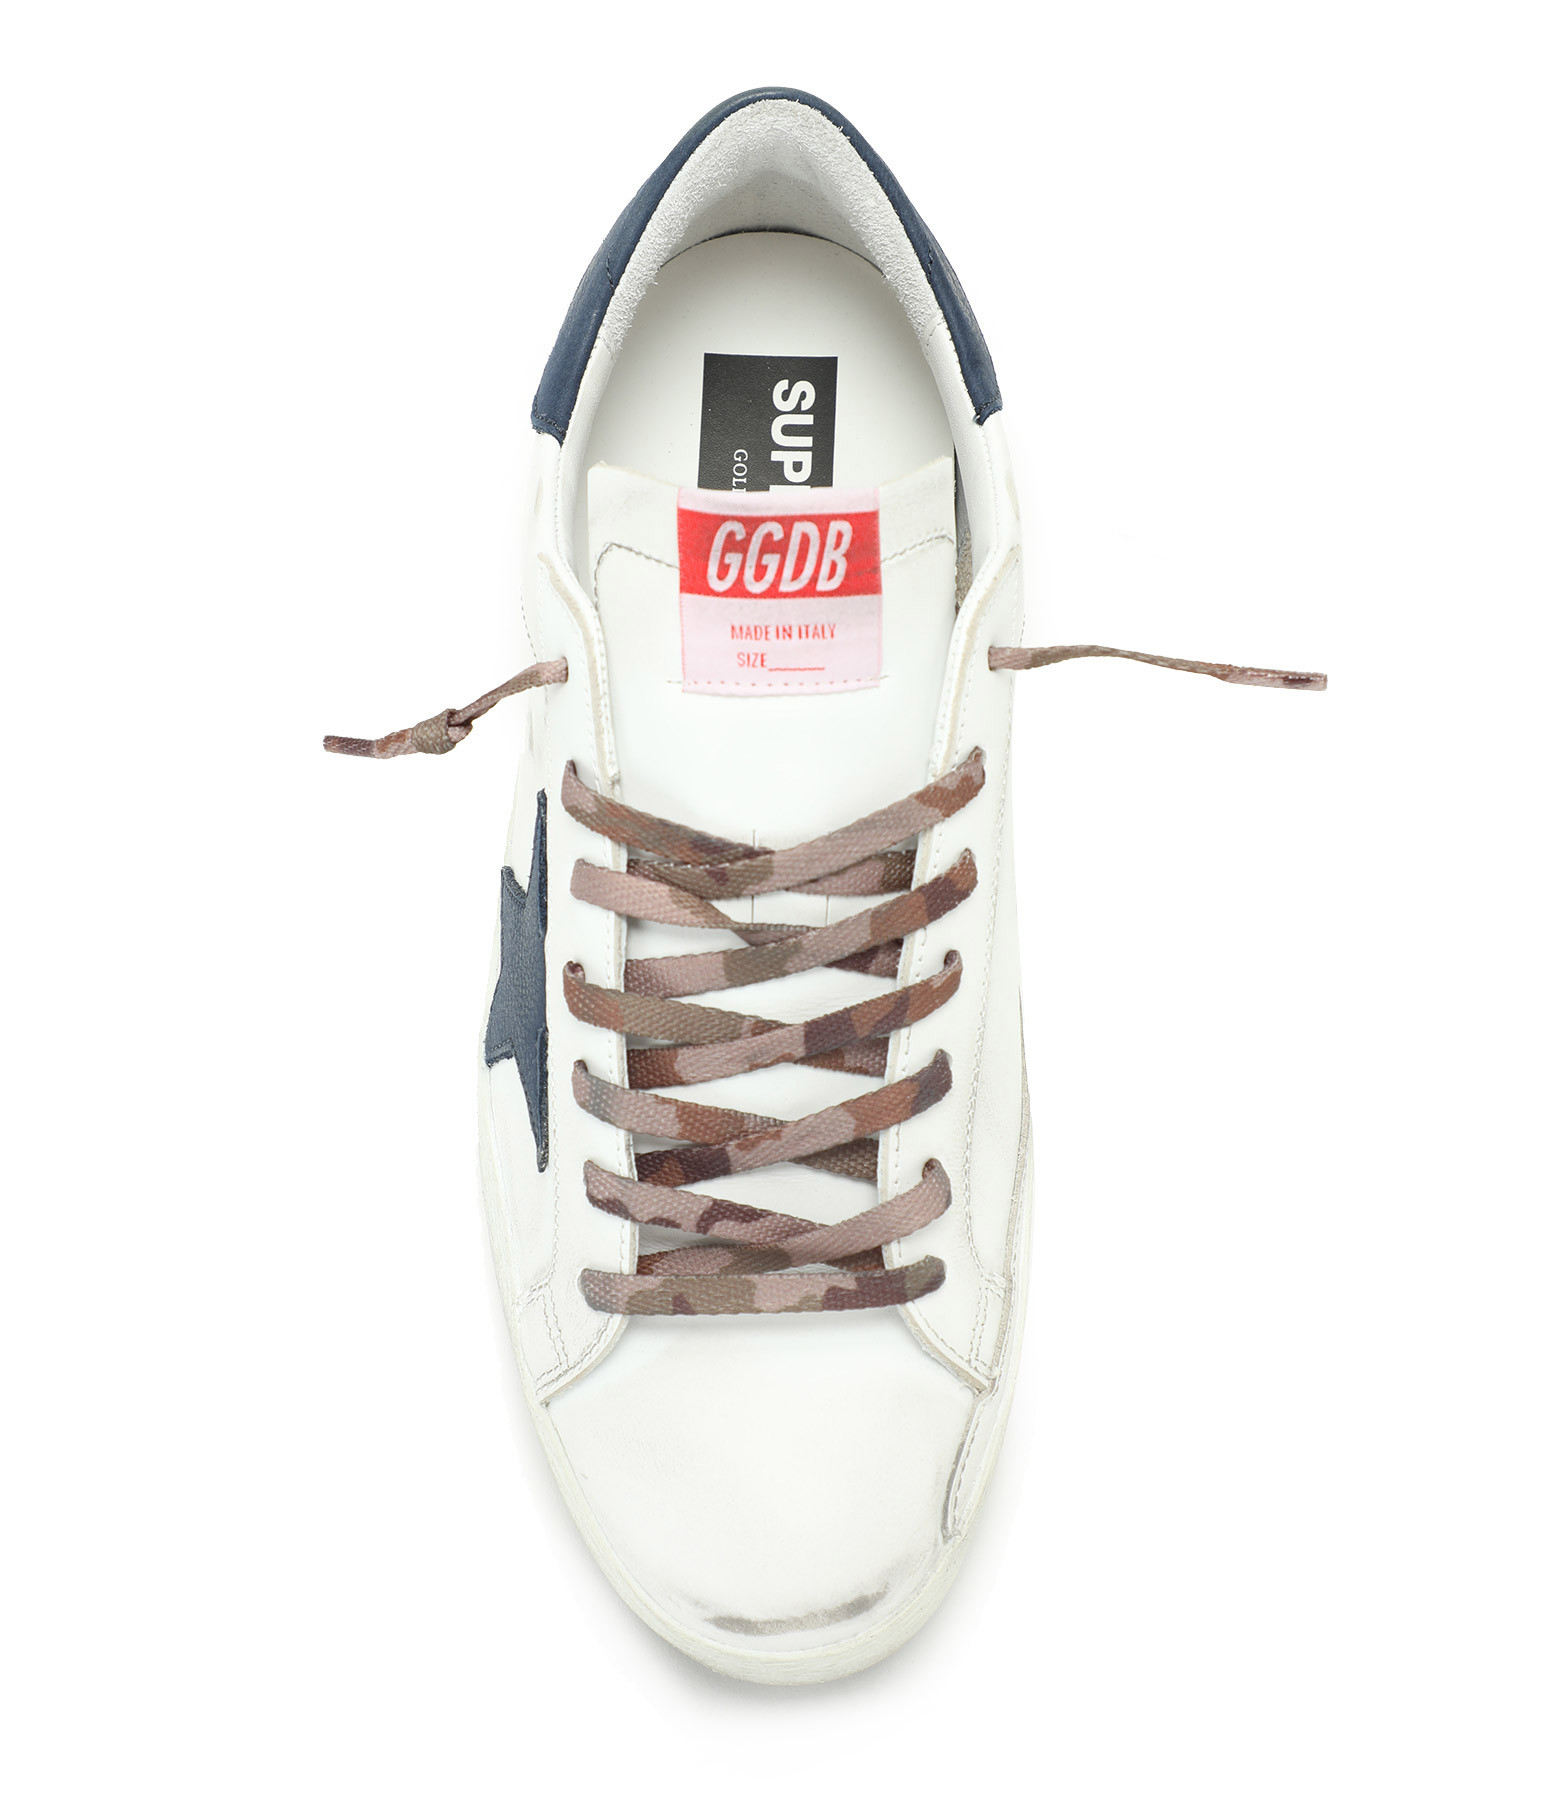 GOLDEN GOOSE - Baskets Homme Superstar Cuir Nubuck Blanc Bleu Nuit